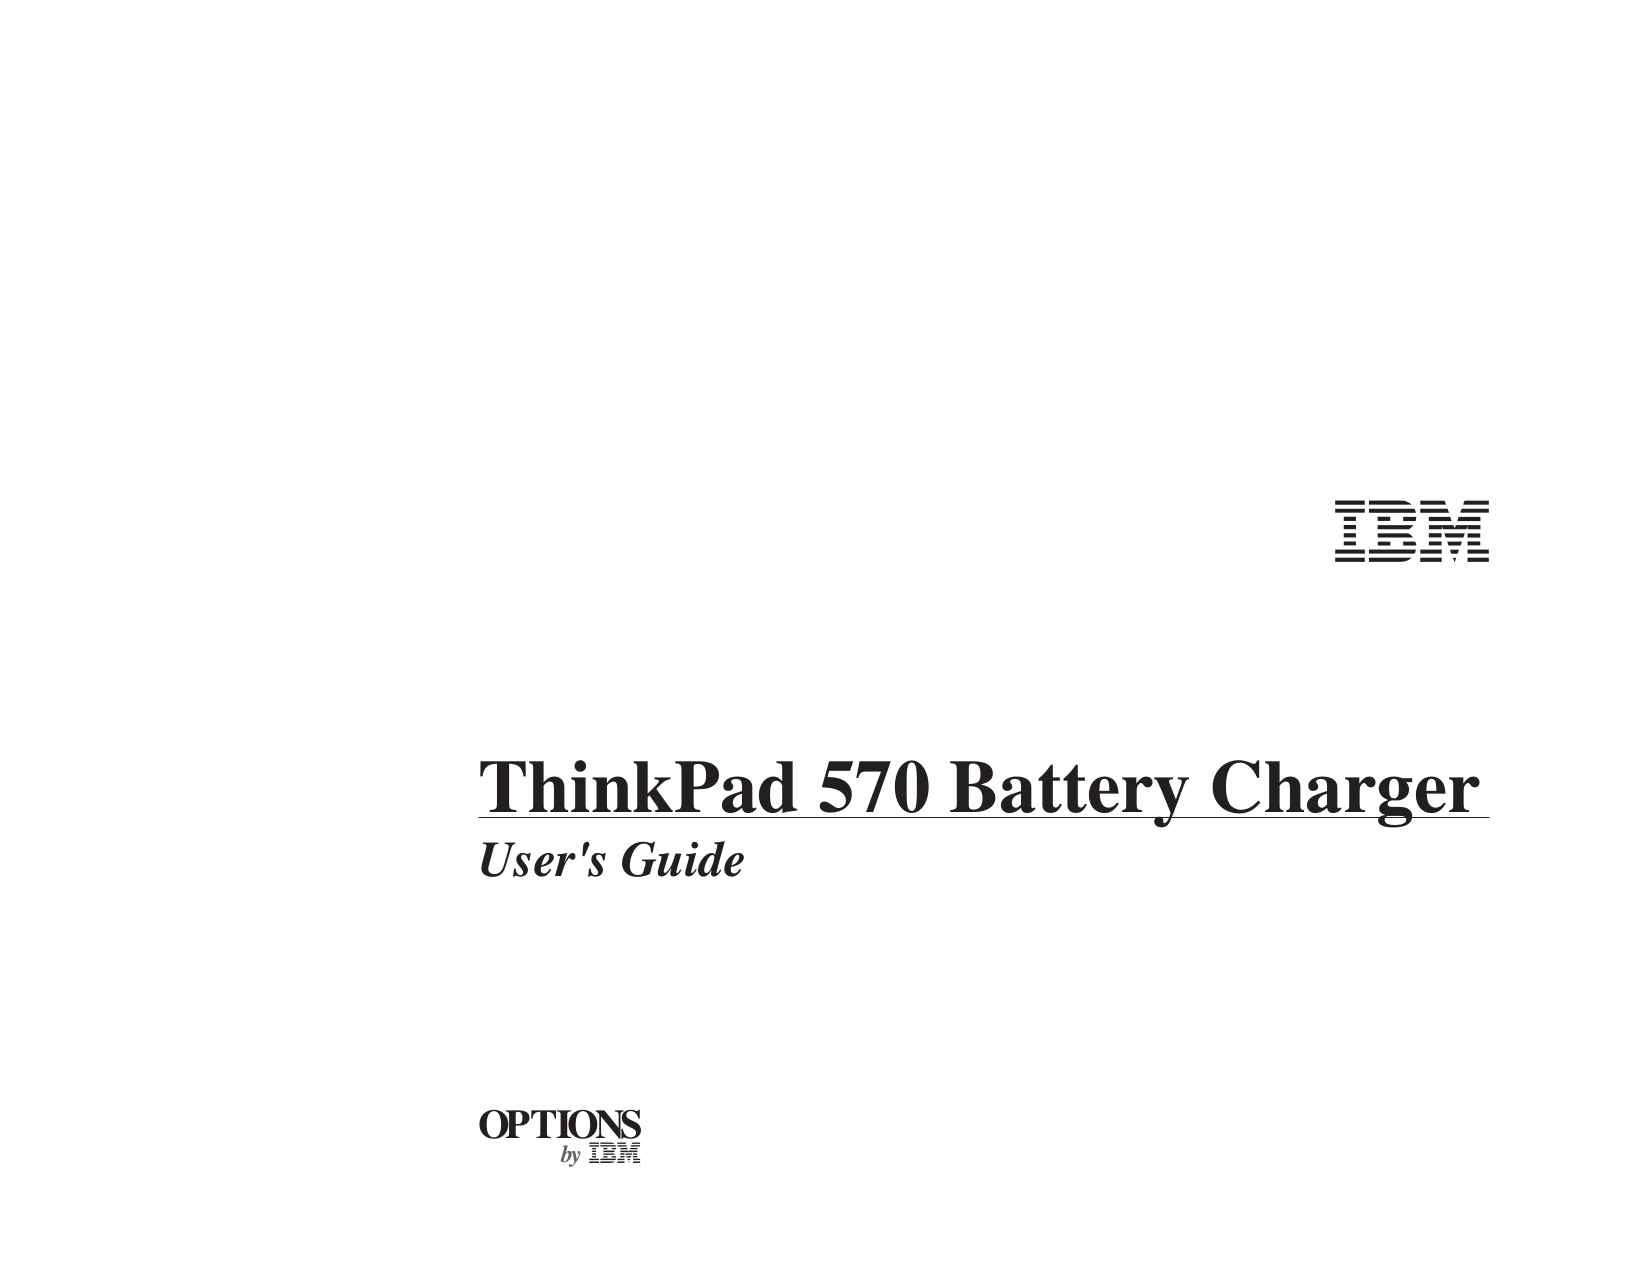 pdf for IBM Laptop ThinkPad 570 manual